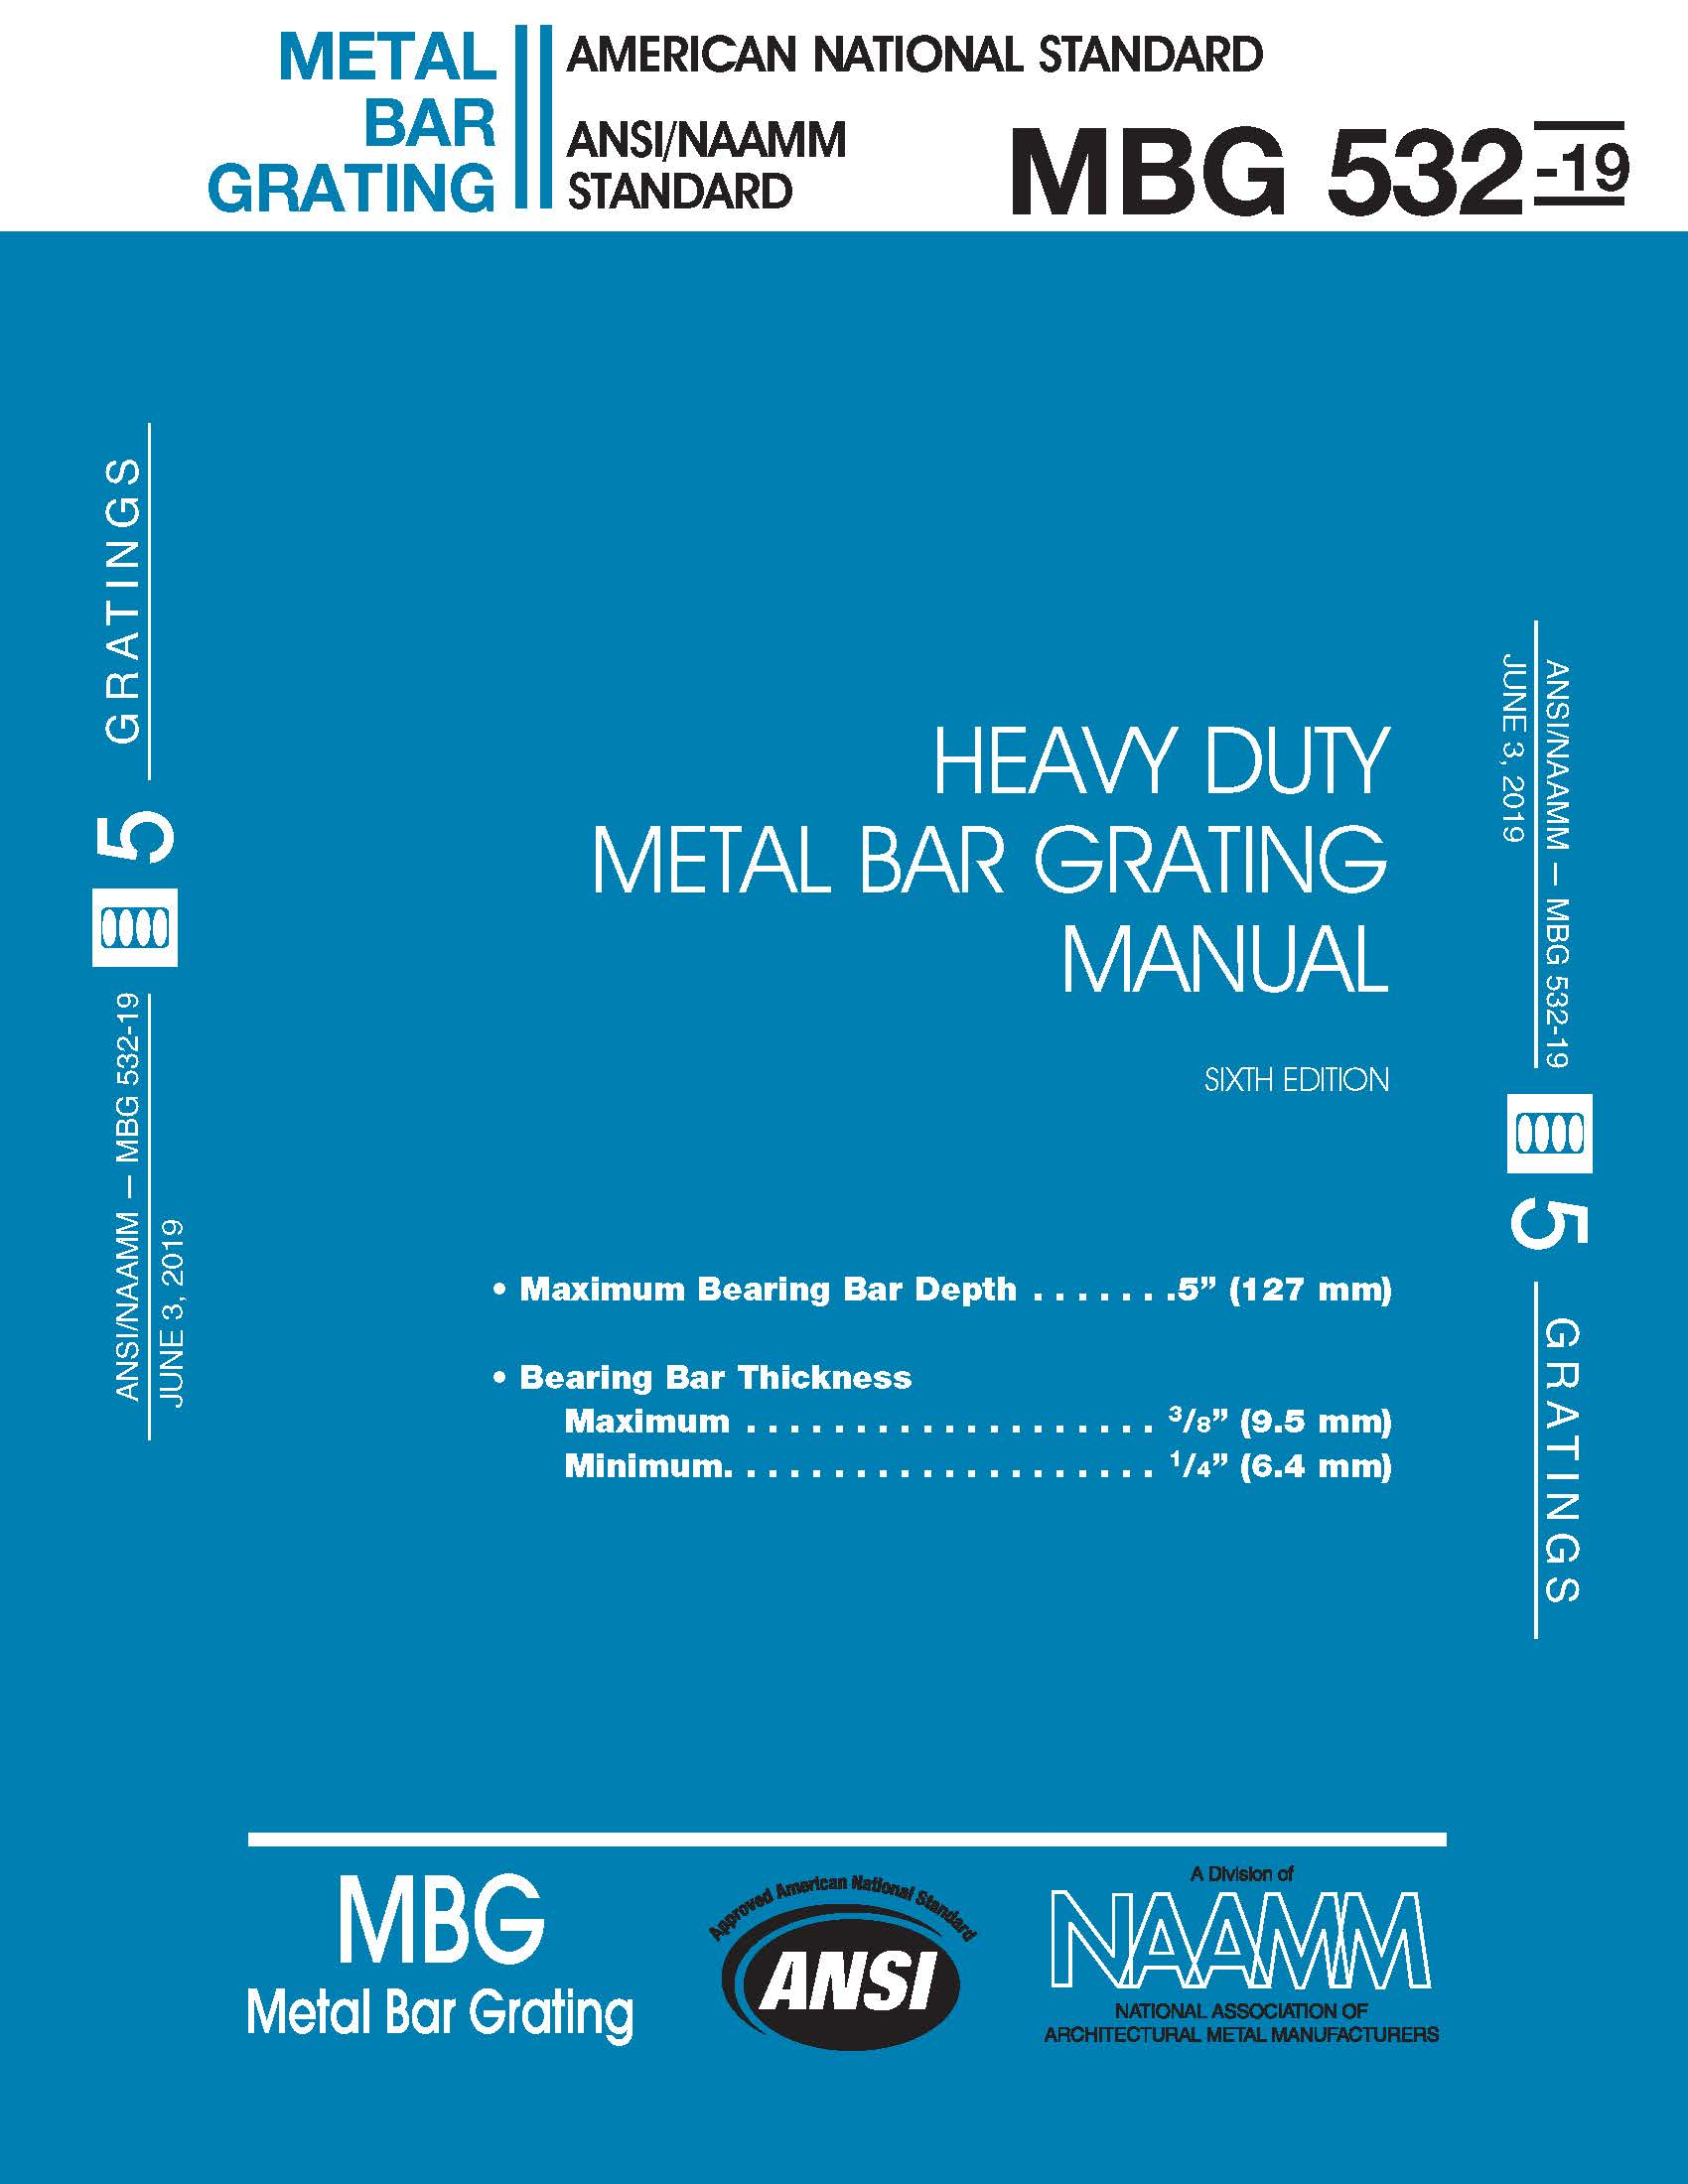 Heavy Duty Metal Bar Grating Manual